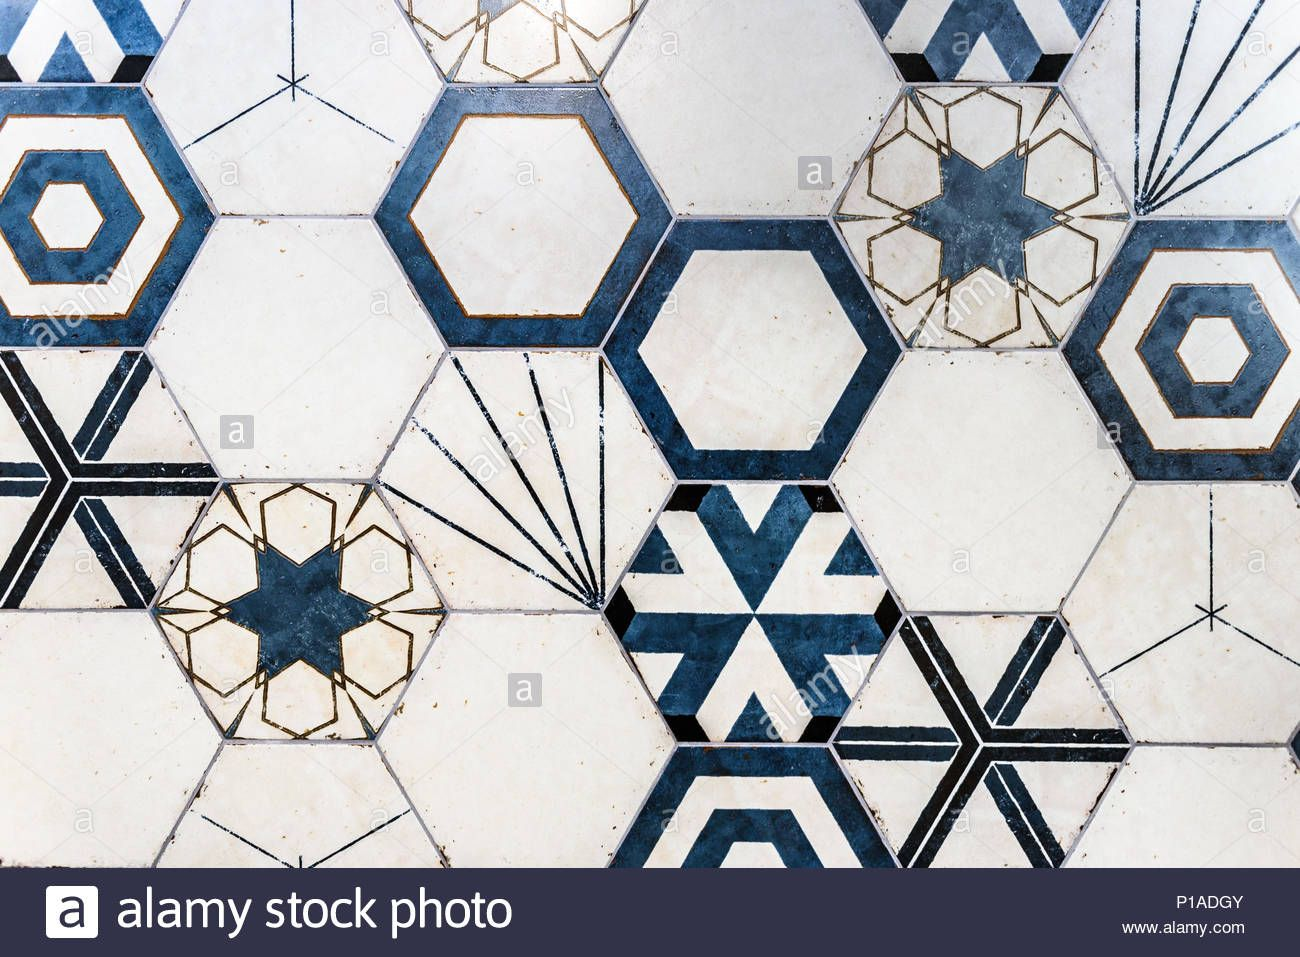 Download This Stock Image Hexagonal Colorful Modern Bathroom Toilette Or Kitchen Ceramic Tiles Wall Artistic Blue A Modern Bathroom Ceramic Tiles Wall Tiles